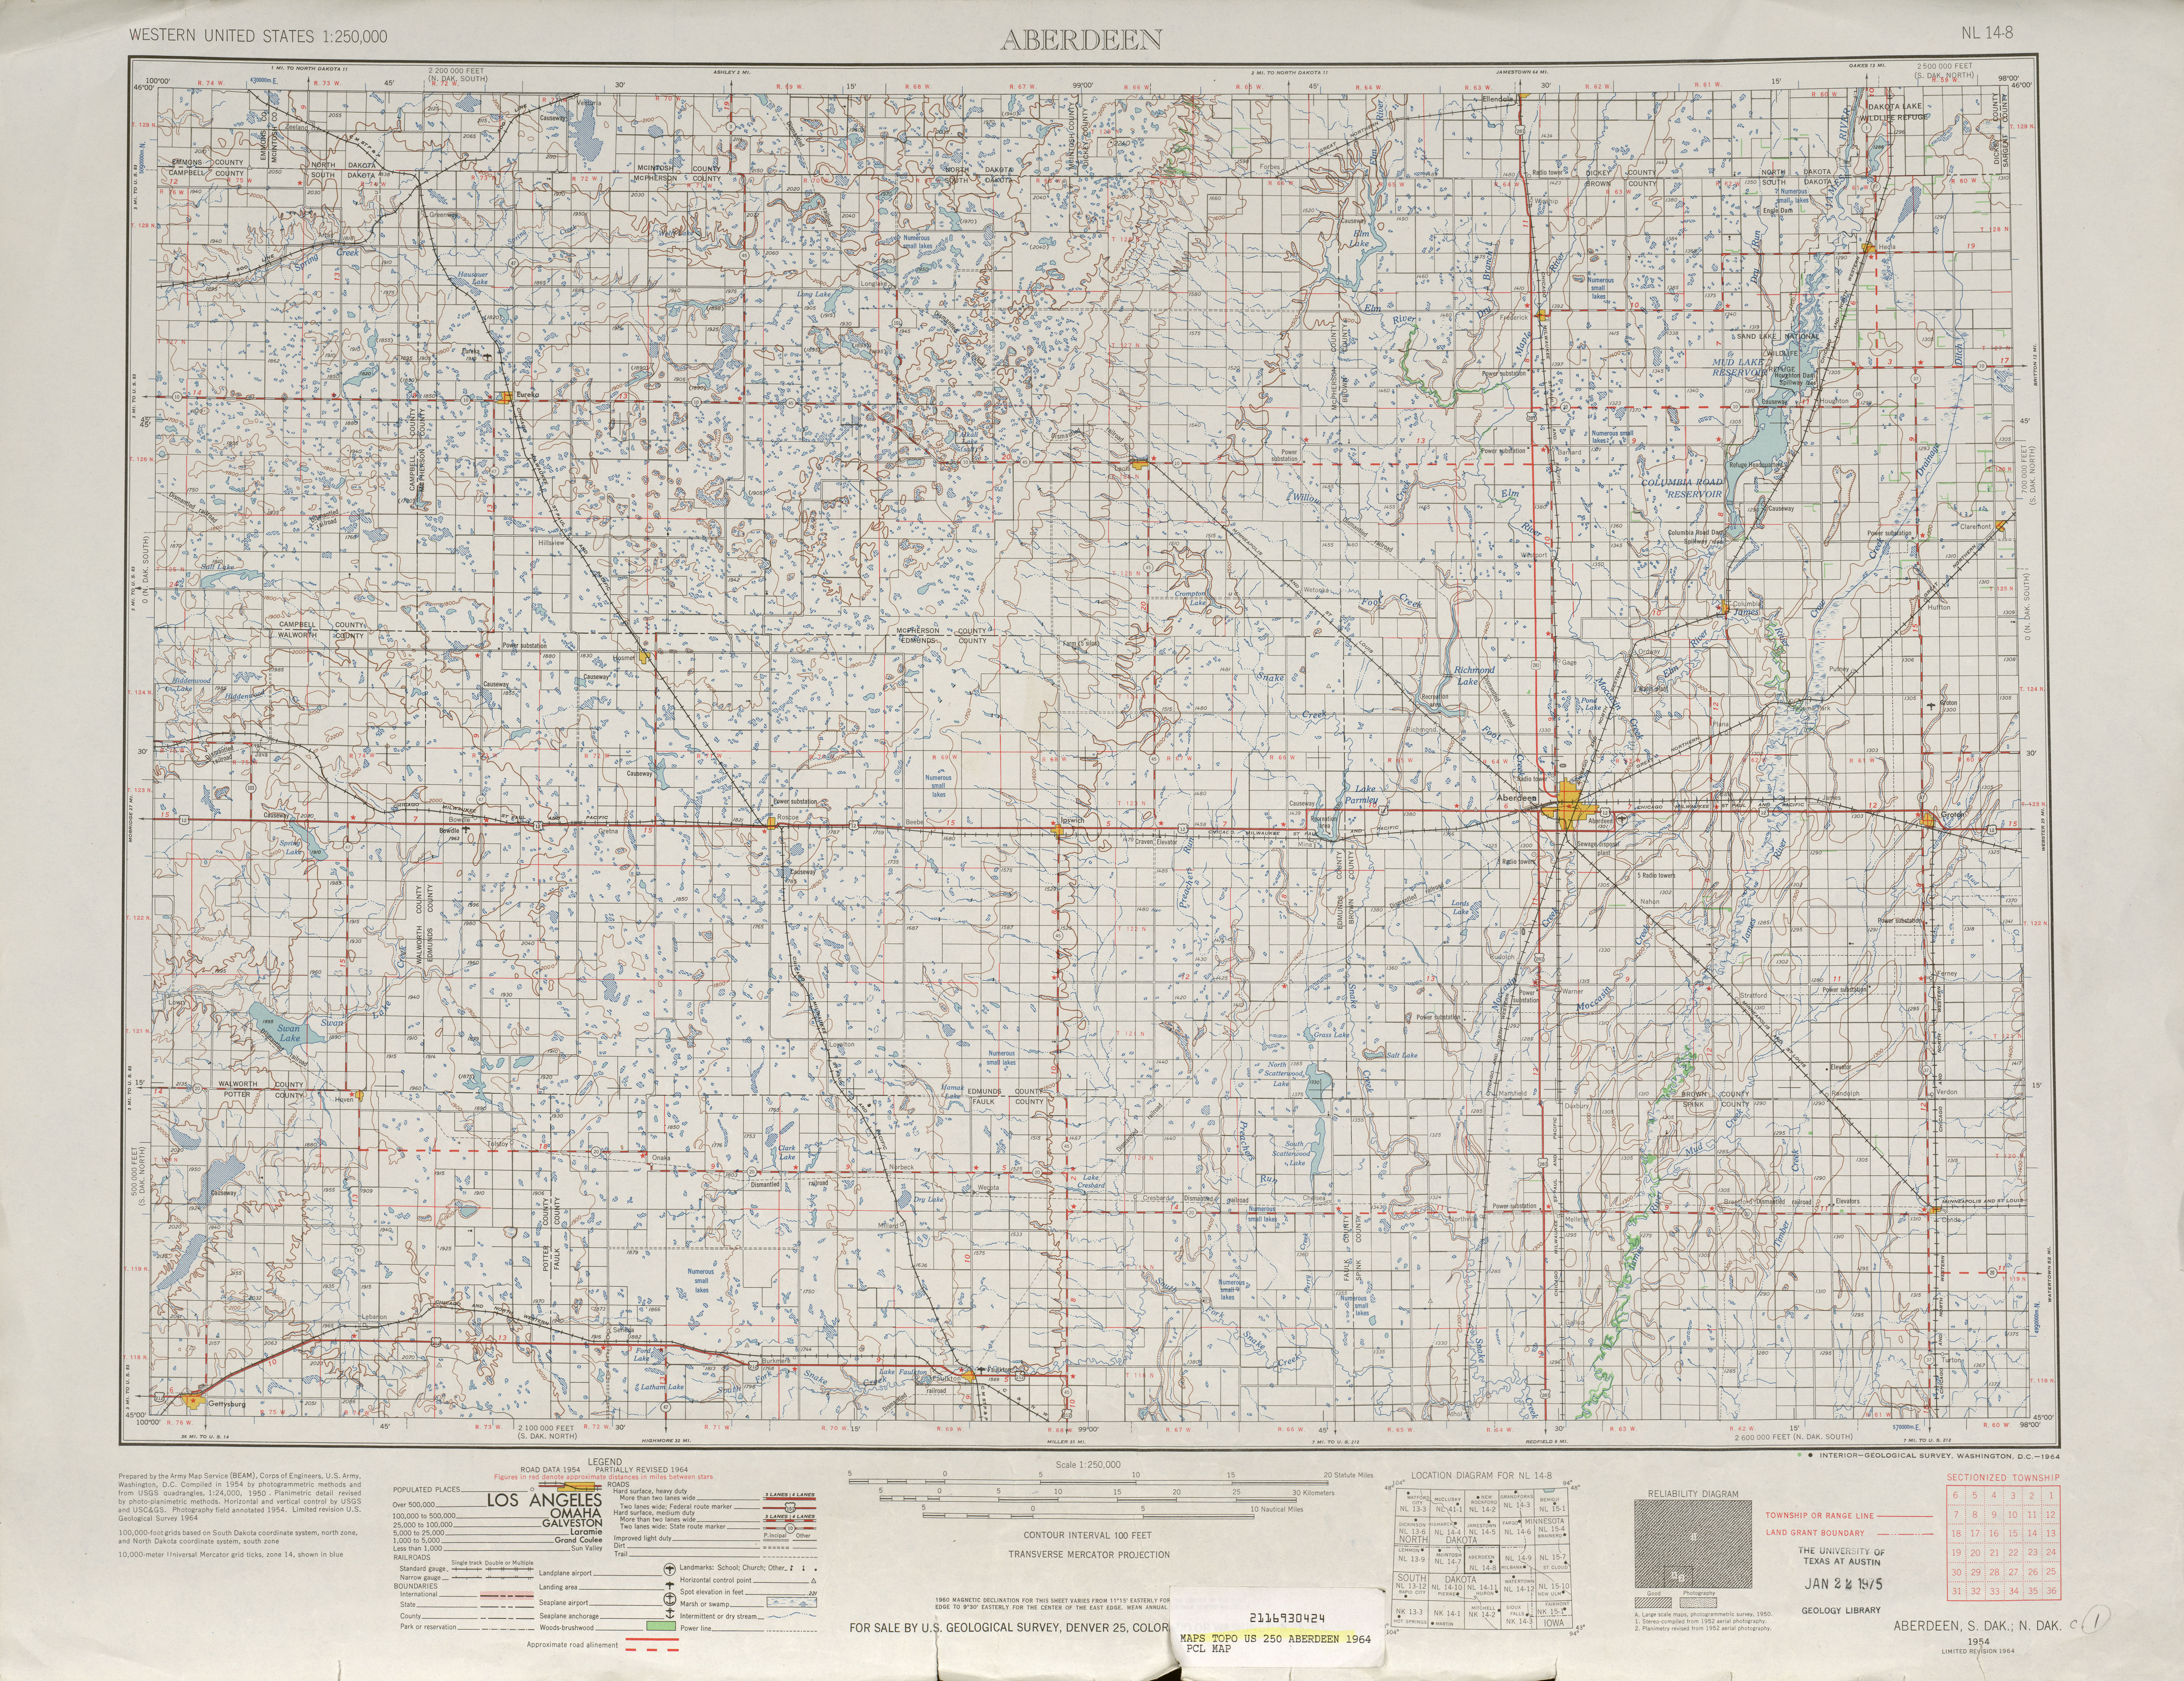 Aberdeen Topographic Map Sheet, United States 1964